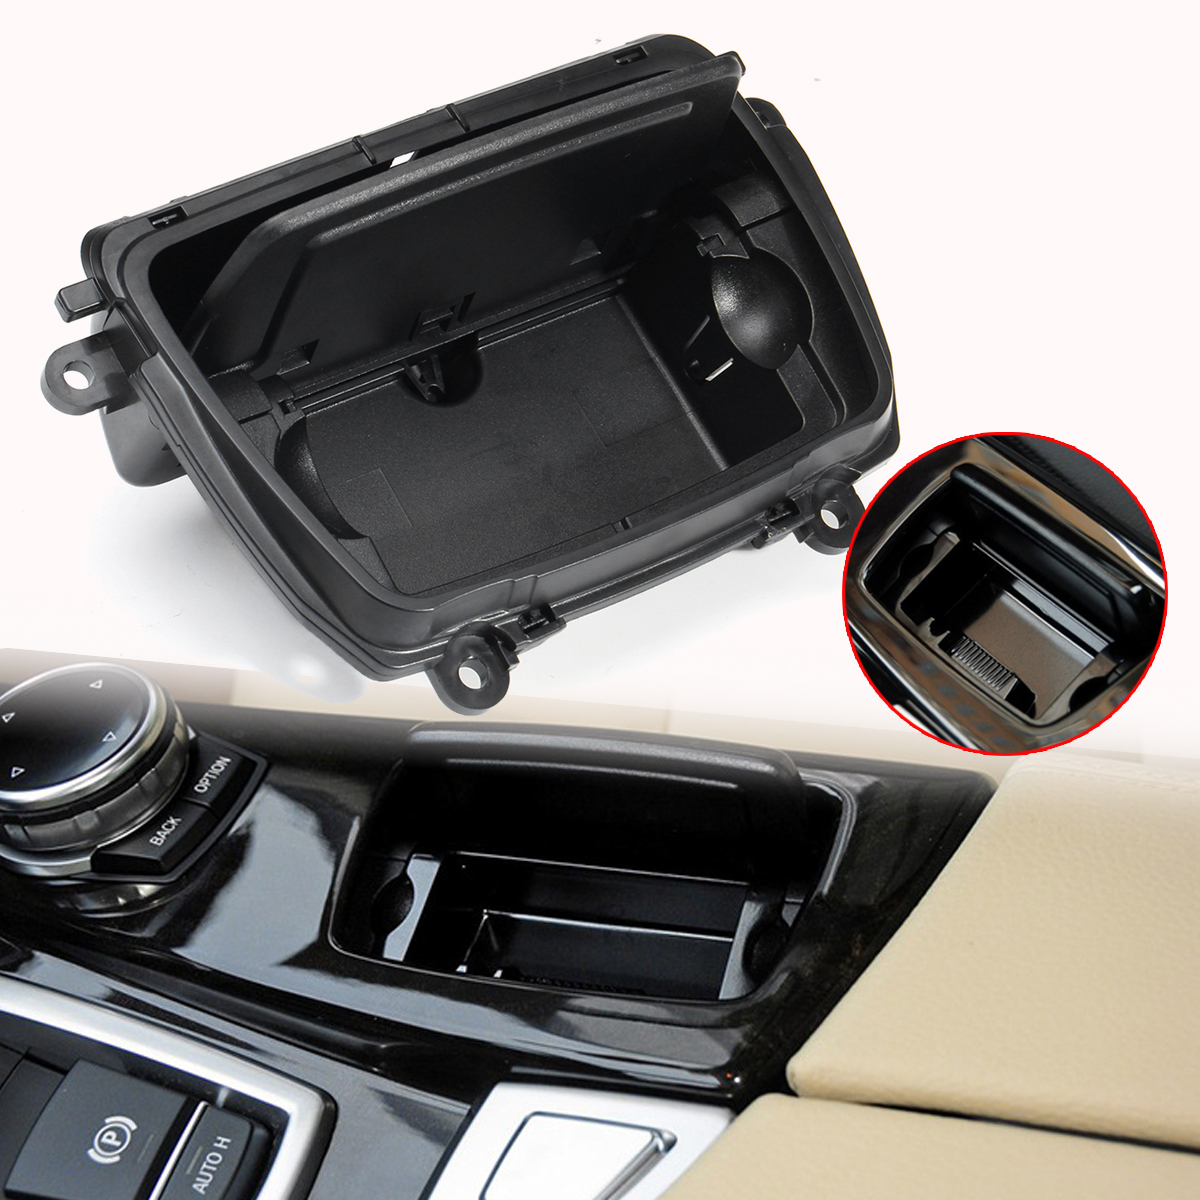 New Automobile Ashtrays Black Plastic Center Console Car Ashtray Assembly Box Fits for BMW 5 Series F10 F11 F18 520 51169206347